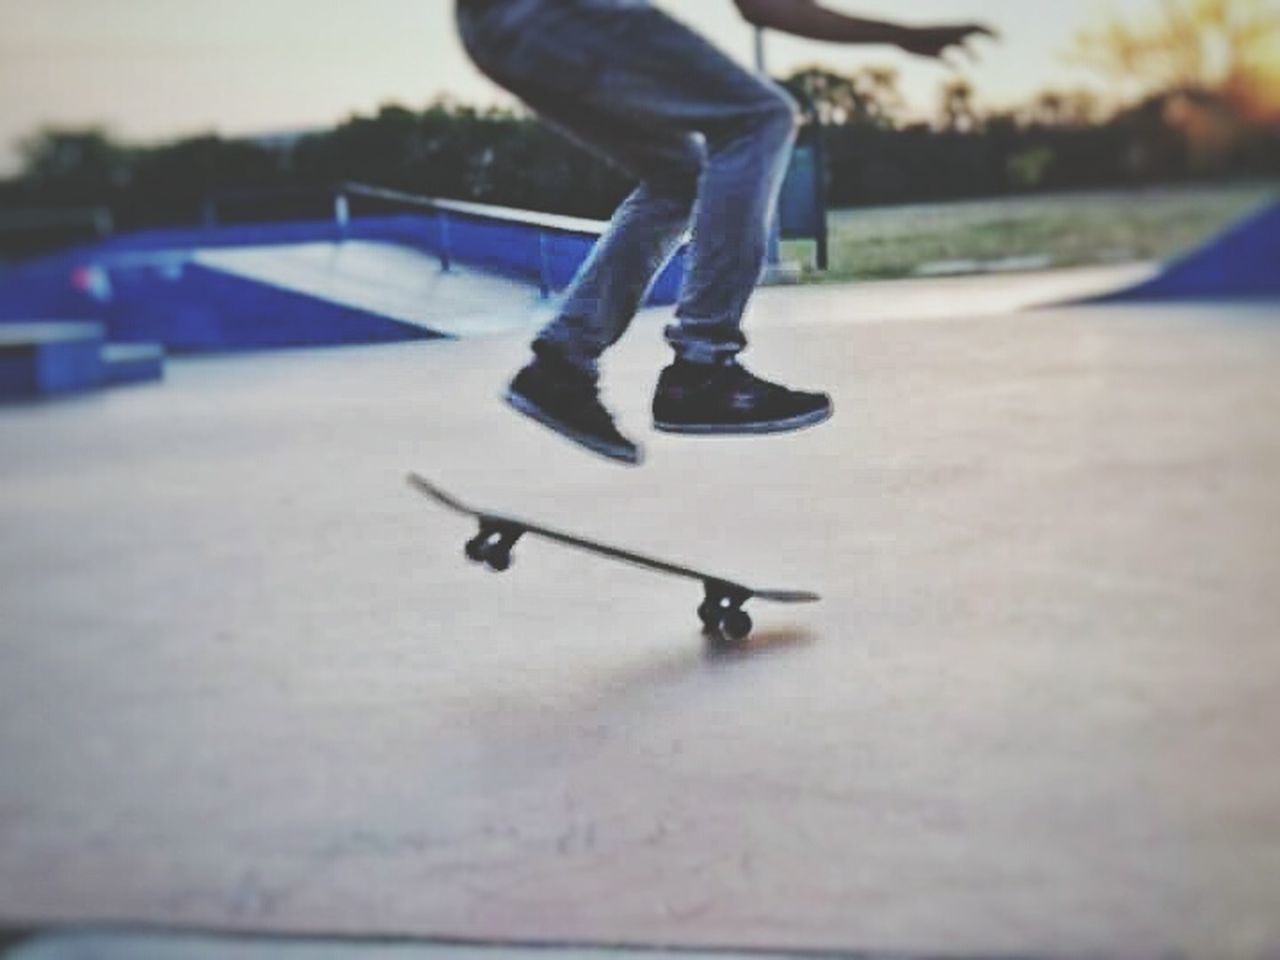 low section, leisure activity, skill, sport, balance, skateboard, real people, skateboard park, one person, lifestyles, skating, ice rink, day, ice skate, weekend activities, ice-skating, human leg, sports ramp, outdoors, winter sport, playing, extreme sports, people